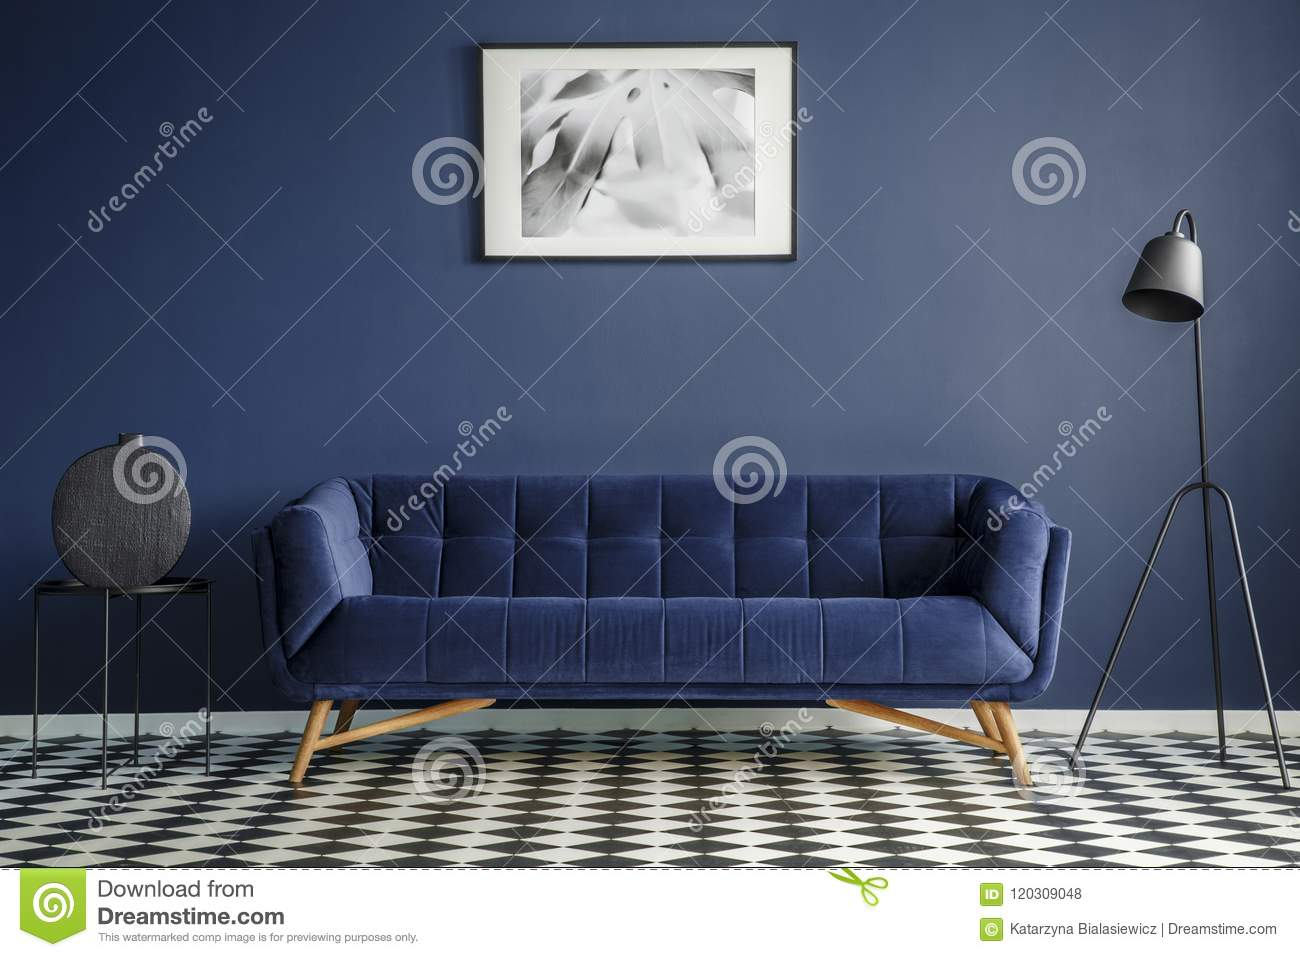 Navy blue room interior with comfortable plush couch in the midd